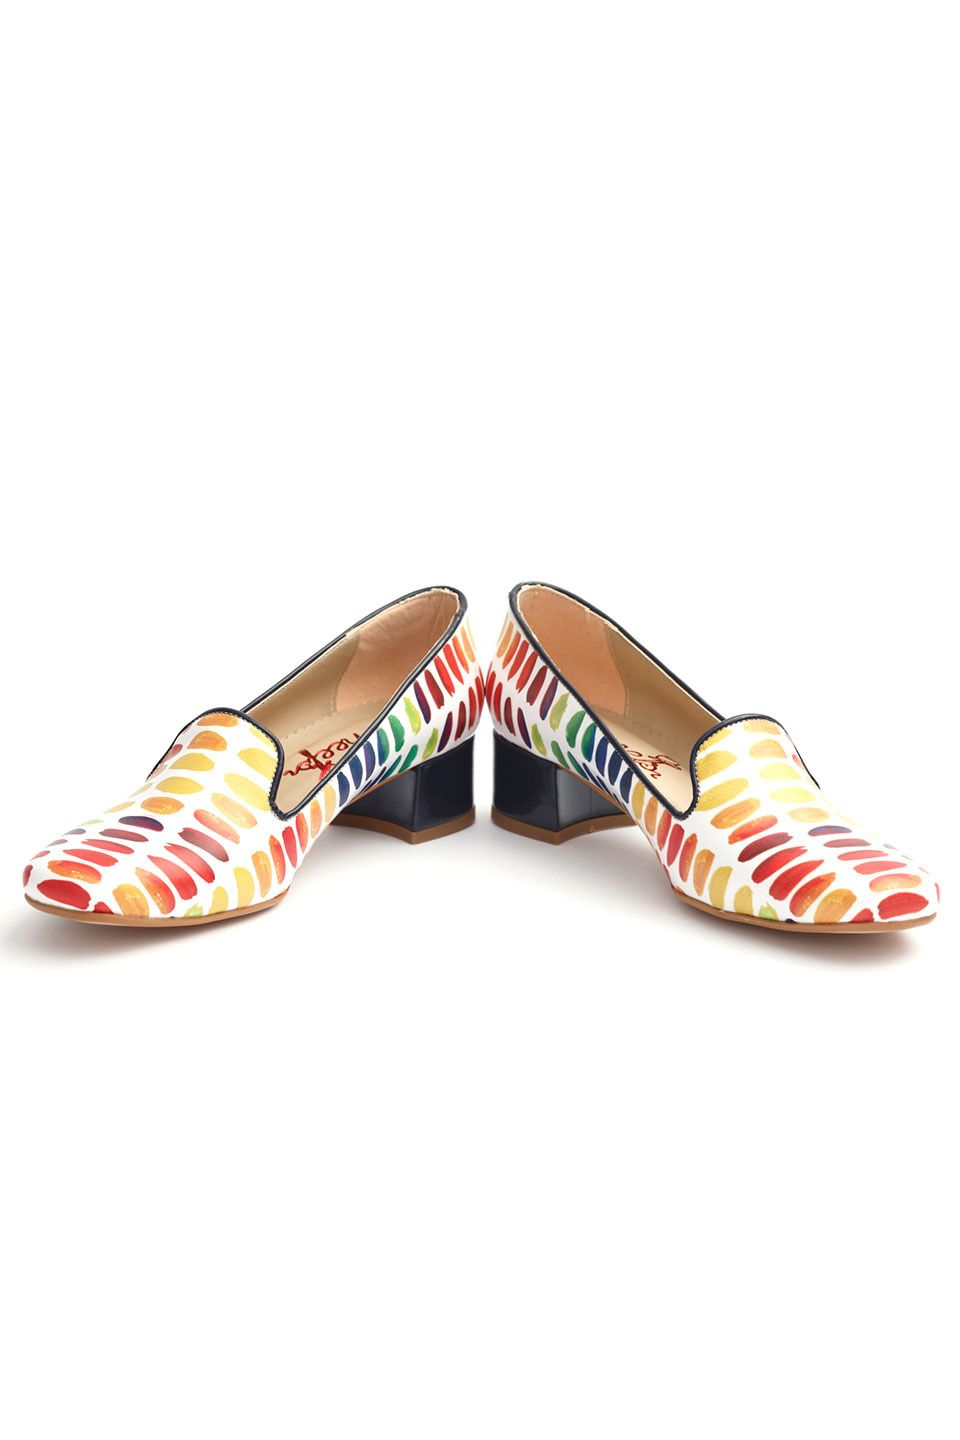 f3fa56757c1 Neefs - Chicago Printed Shoes in Multi